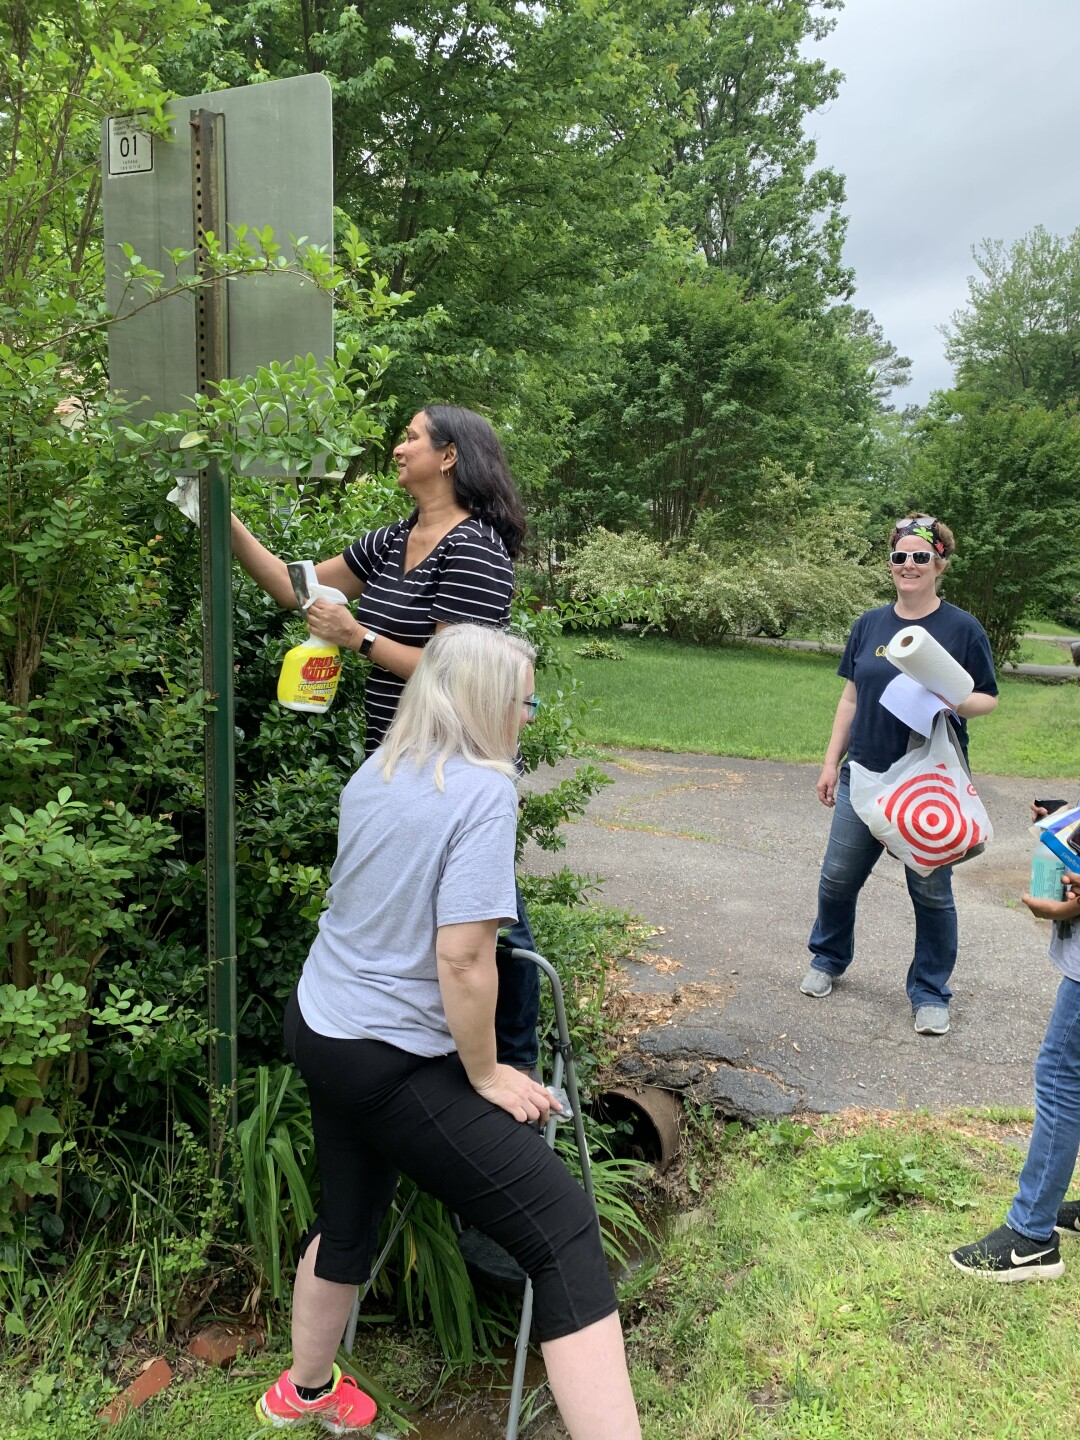 Photos: Volunteers 'couldn't wait' to clean up White Power, swastika graffiti in West Endneighborhoods